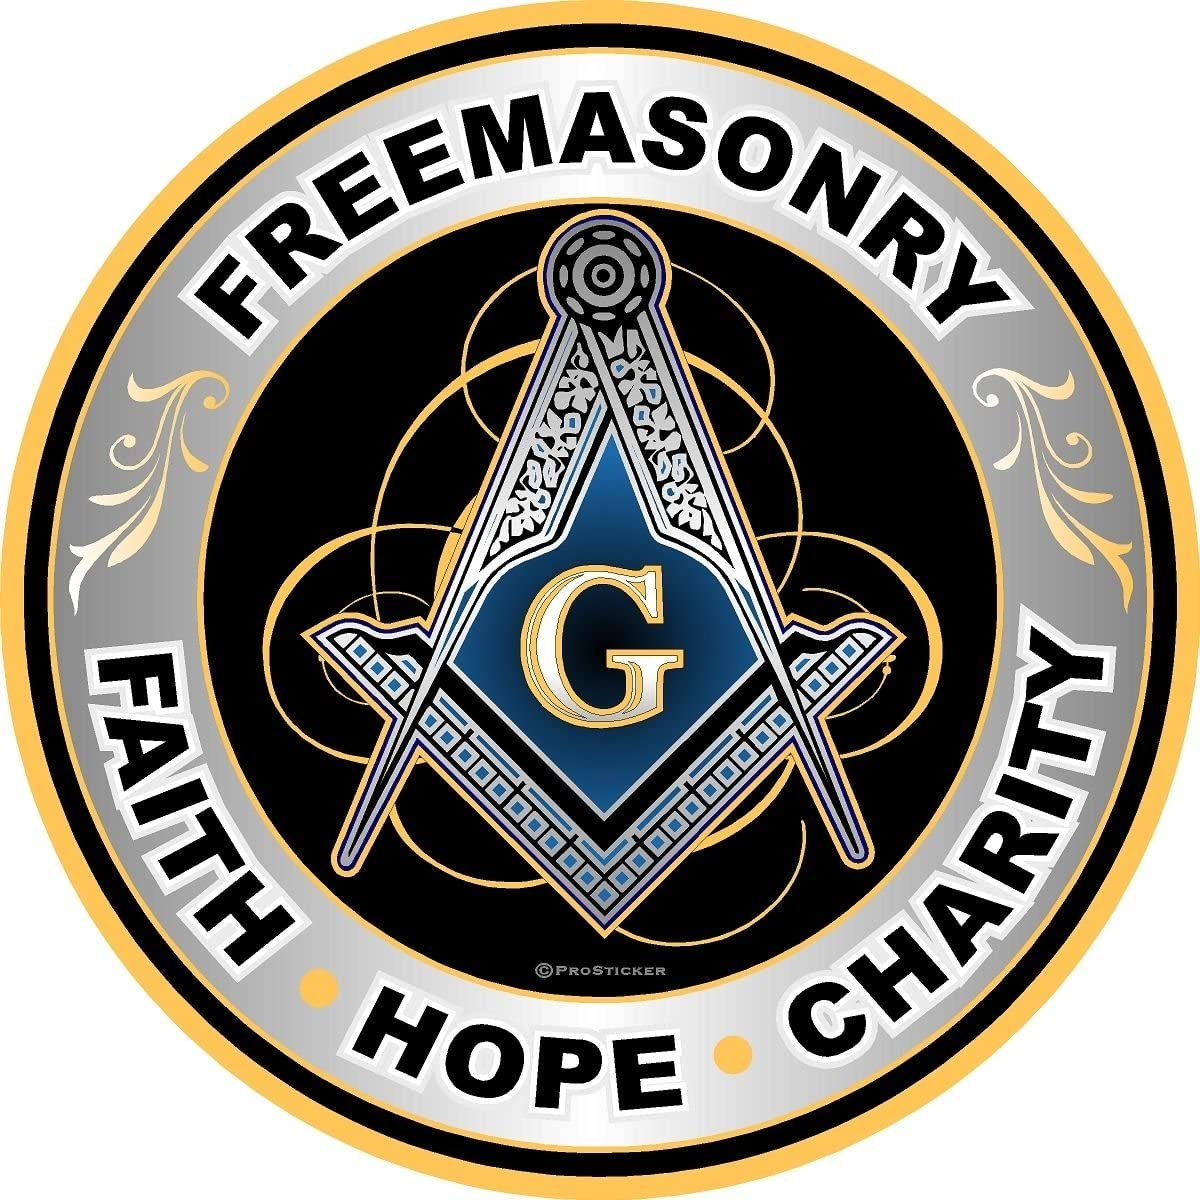 3 Masonic Series Freemason Compass Square Decal Sticker /… Four Pack ProSticker 0008